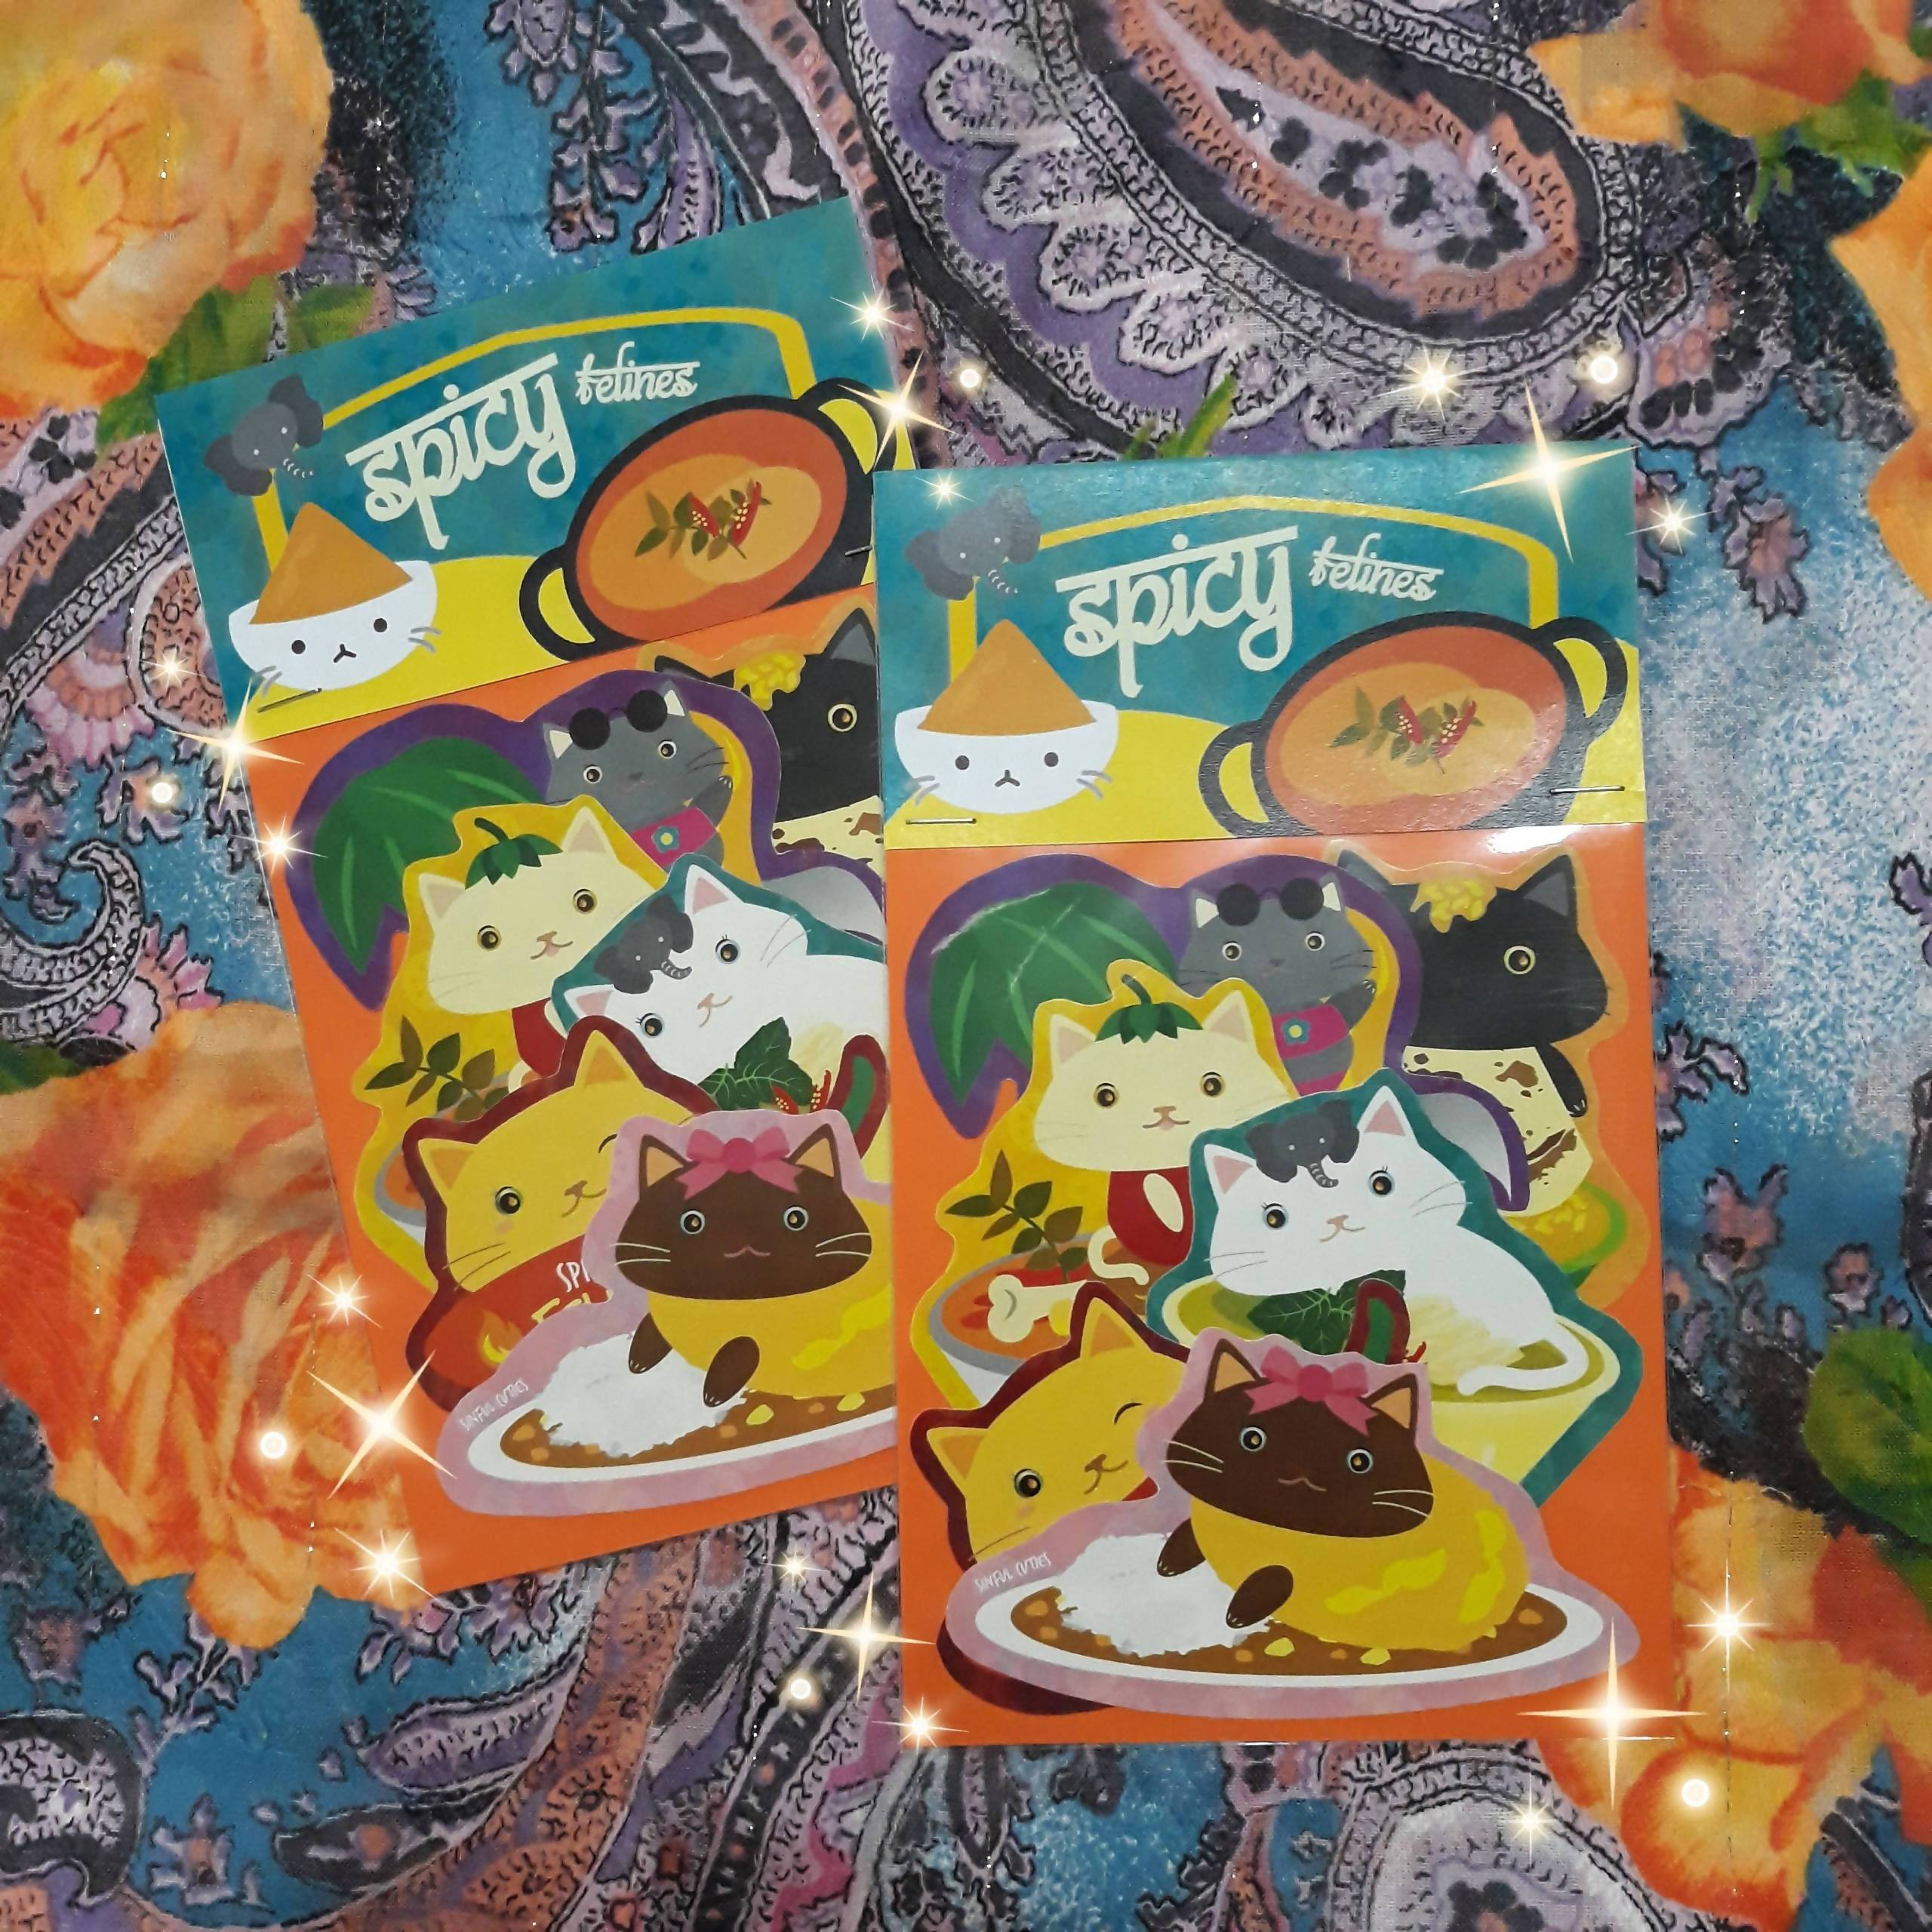 Spicy Curry Felines - 6 pcs Sticker Pack - Stickers - Sinful Cuties - Naiise